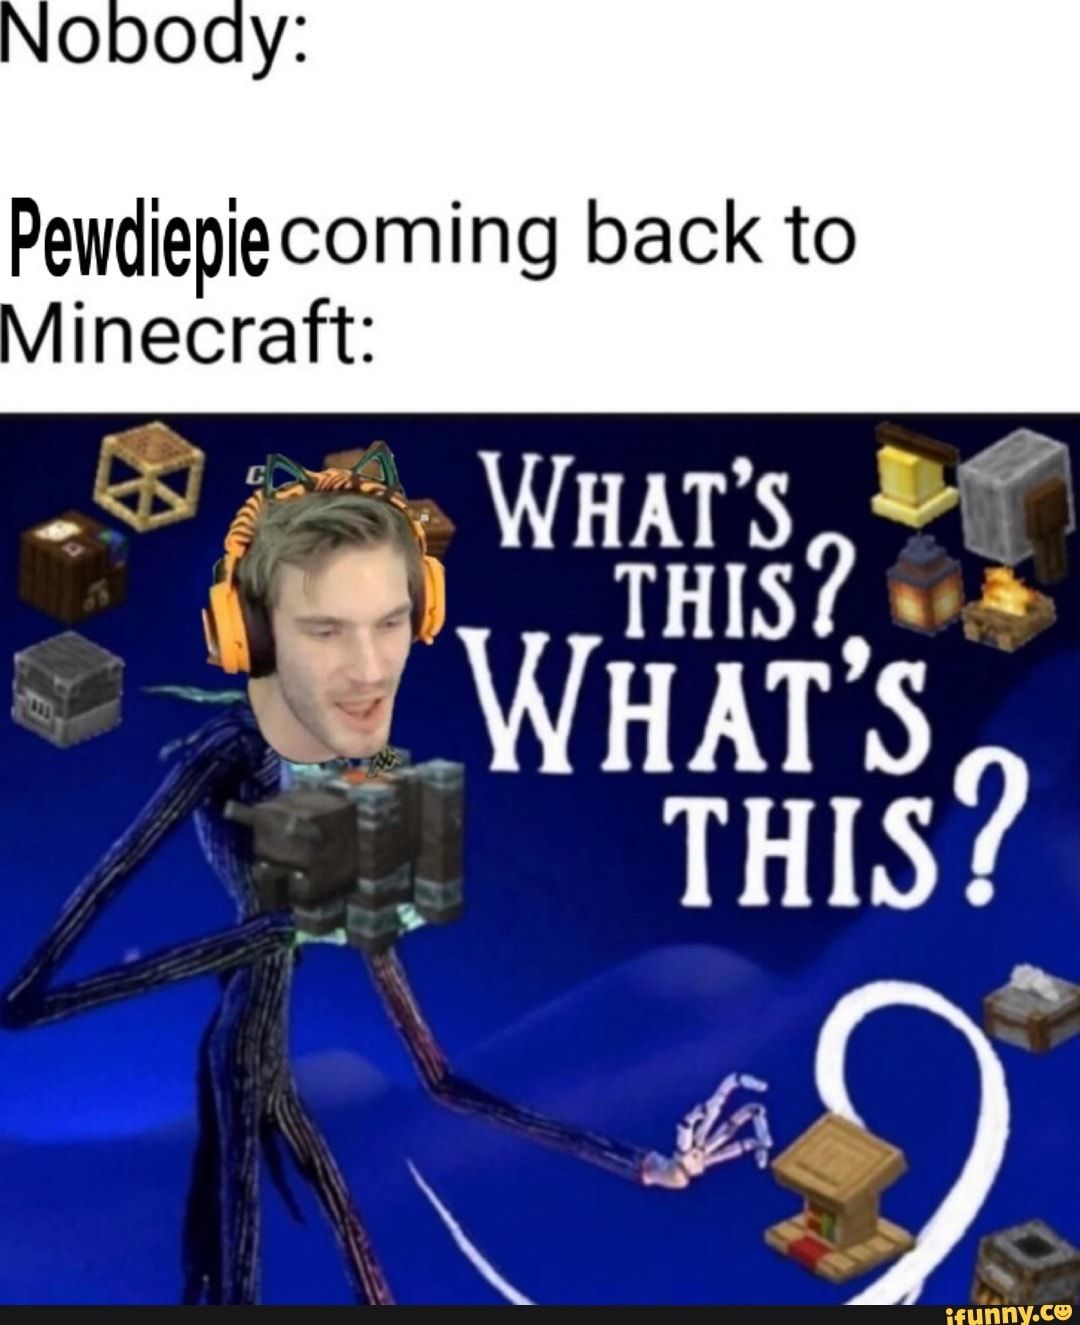 Felix Plays Minecraft Jack Plays Minecraft Mark Roblox No Ooy Pewdiepiecoming Back To Inecraft Ifunny Pewdiepie Funny Video Memes Minecraft Memes